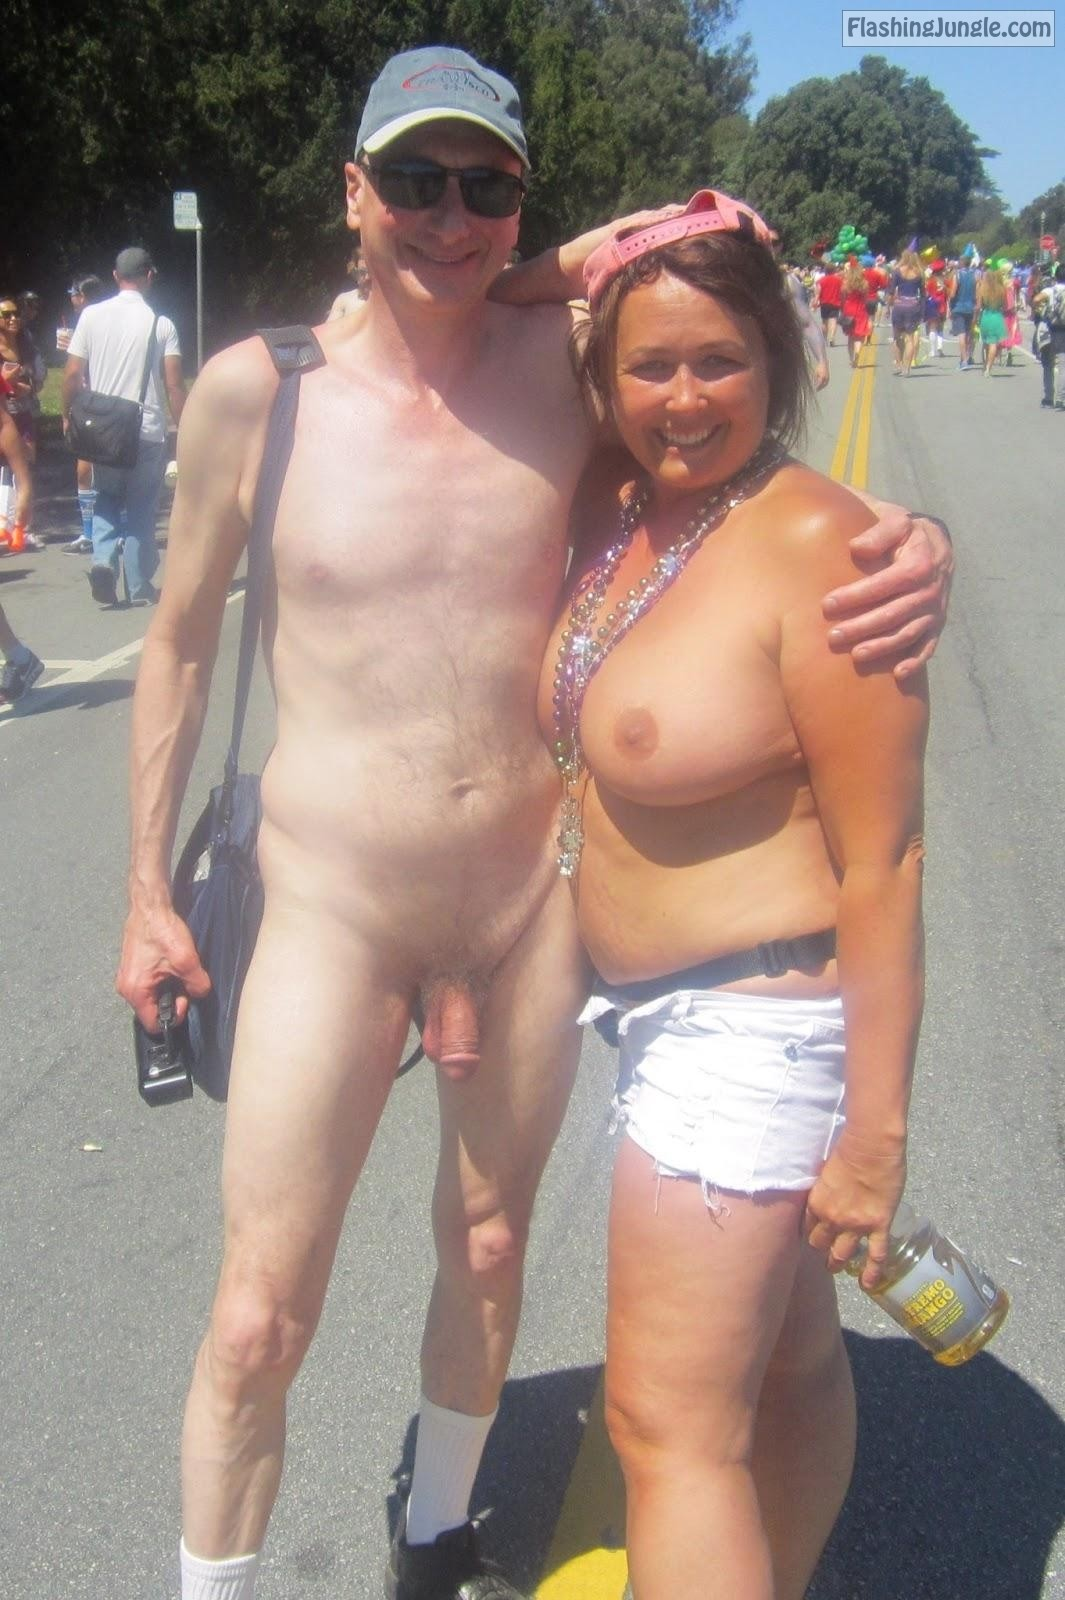 Topless Girl Public Nudity Exhibitionist Brucie Bay to Breakers Flashers